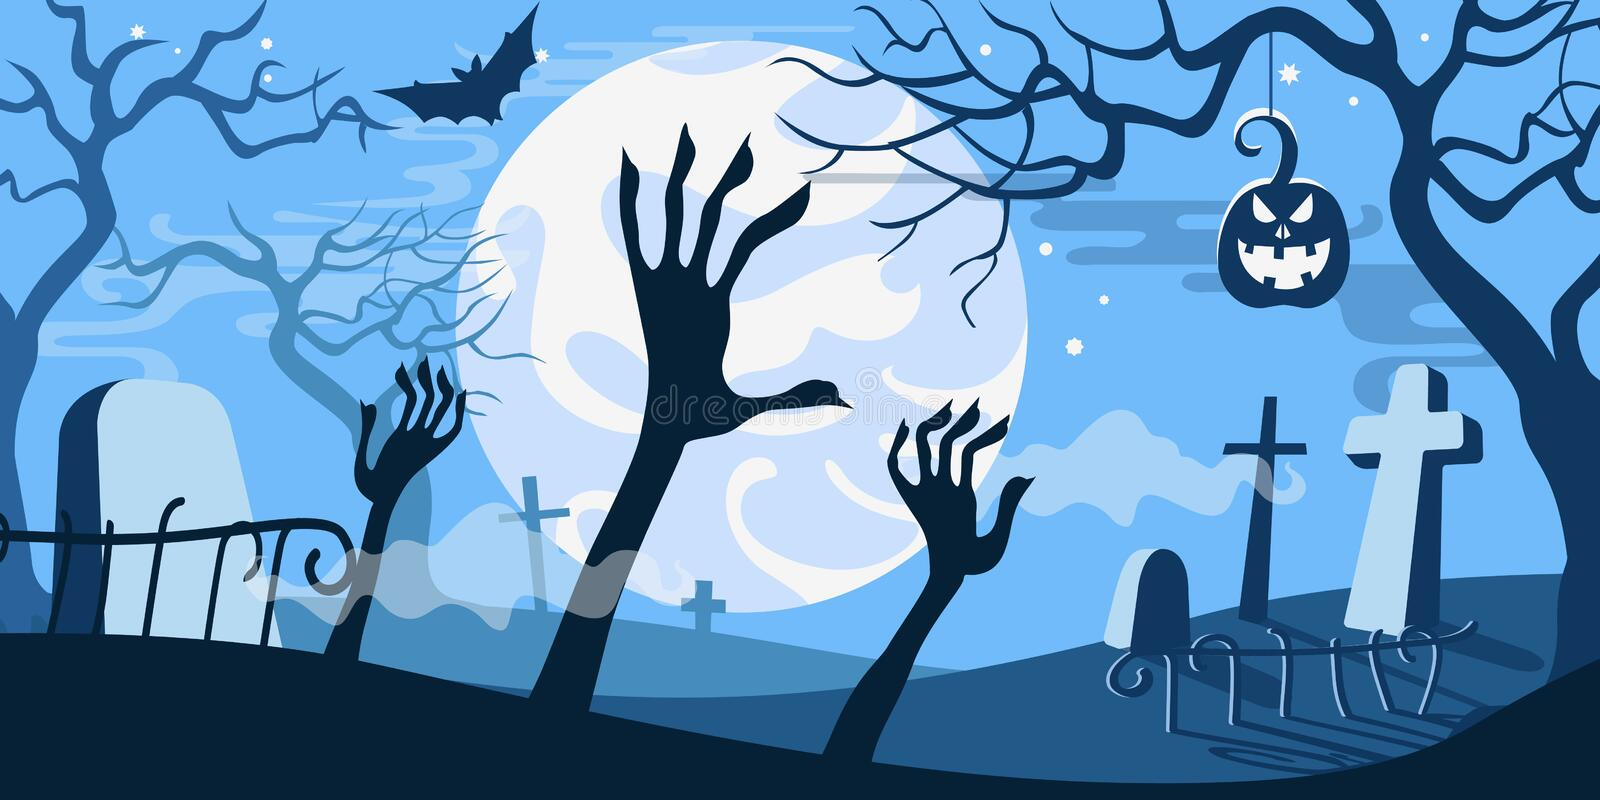 Download Cimetière Effrayant De Calibre De Concept D'illustration De Vecteur De Halloween Illustration de Vecteur - Illustration du milieux, copie: 45354570